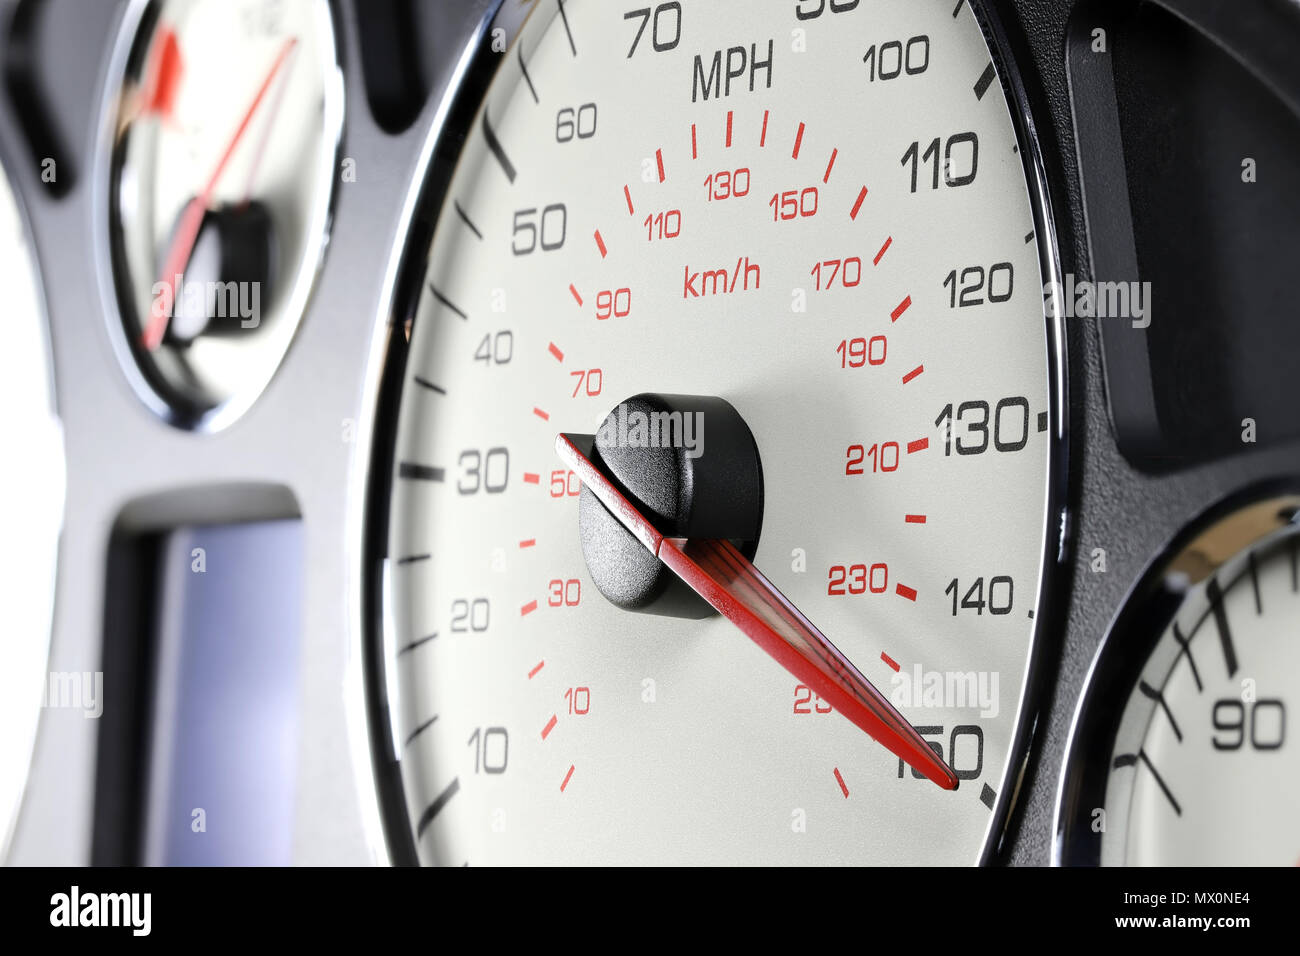 speedometer at 150 MPH - Stock Image